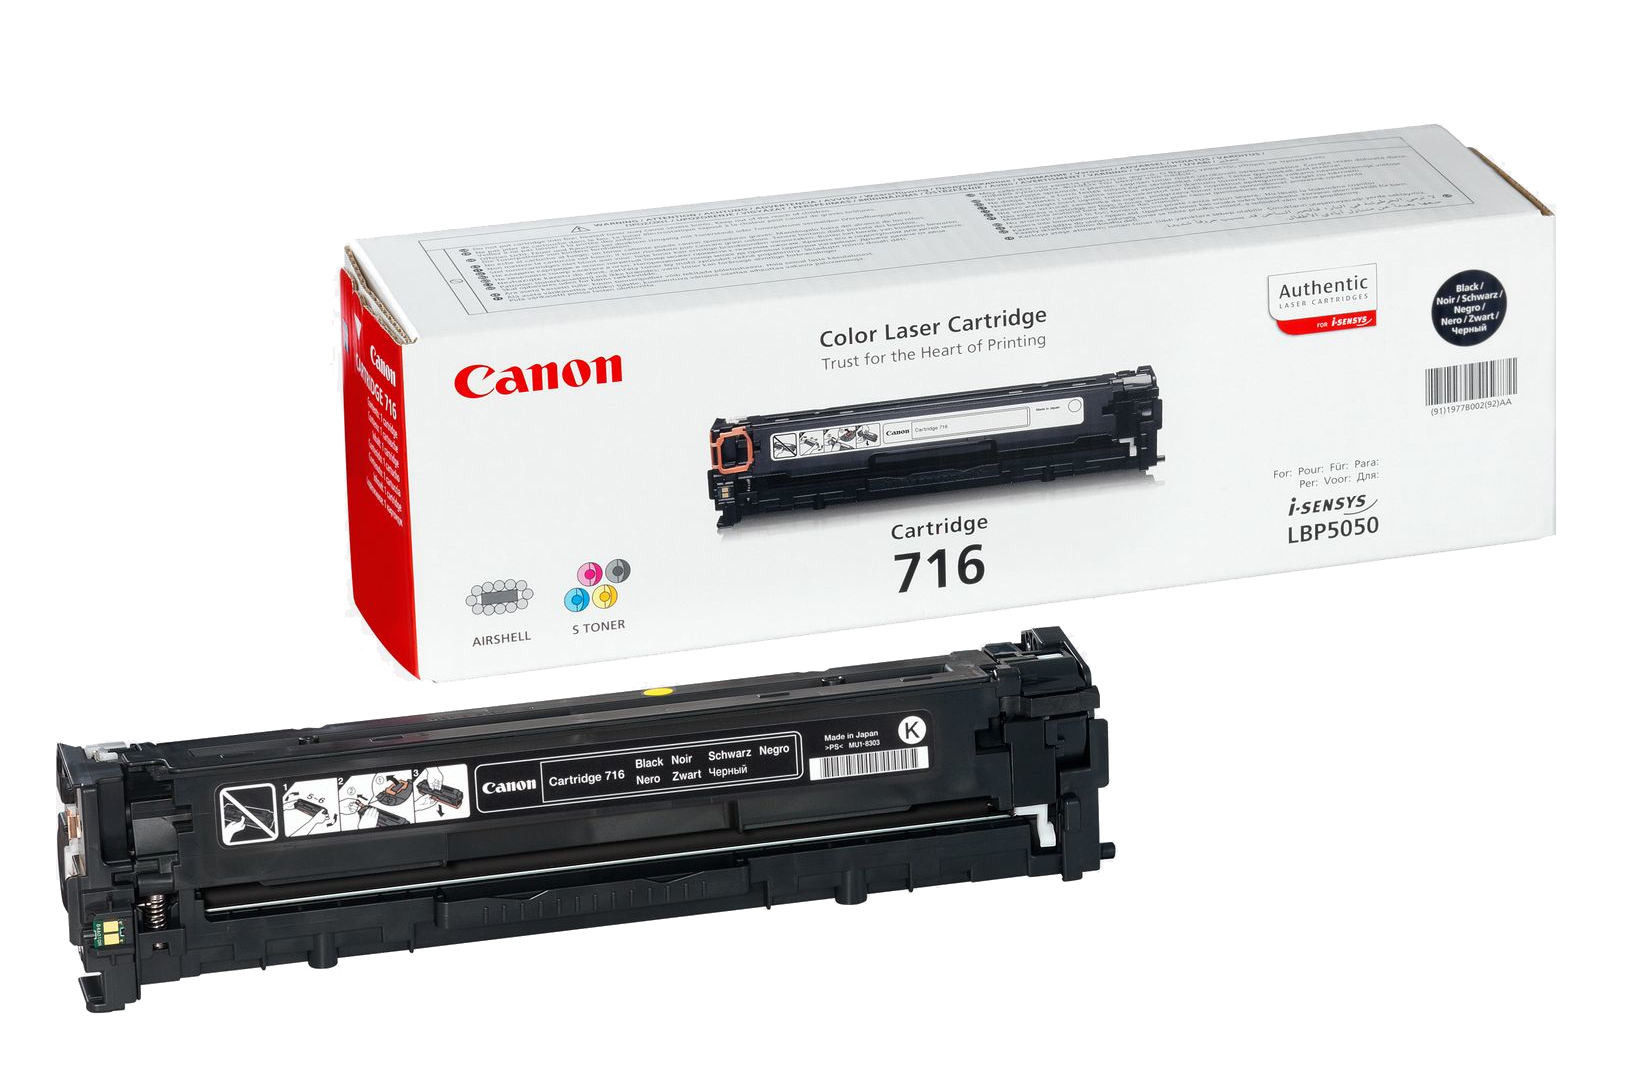 Canon 716 Black Toner 1980b002 1980b002 - WC01